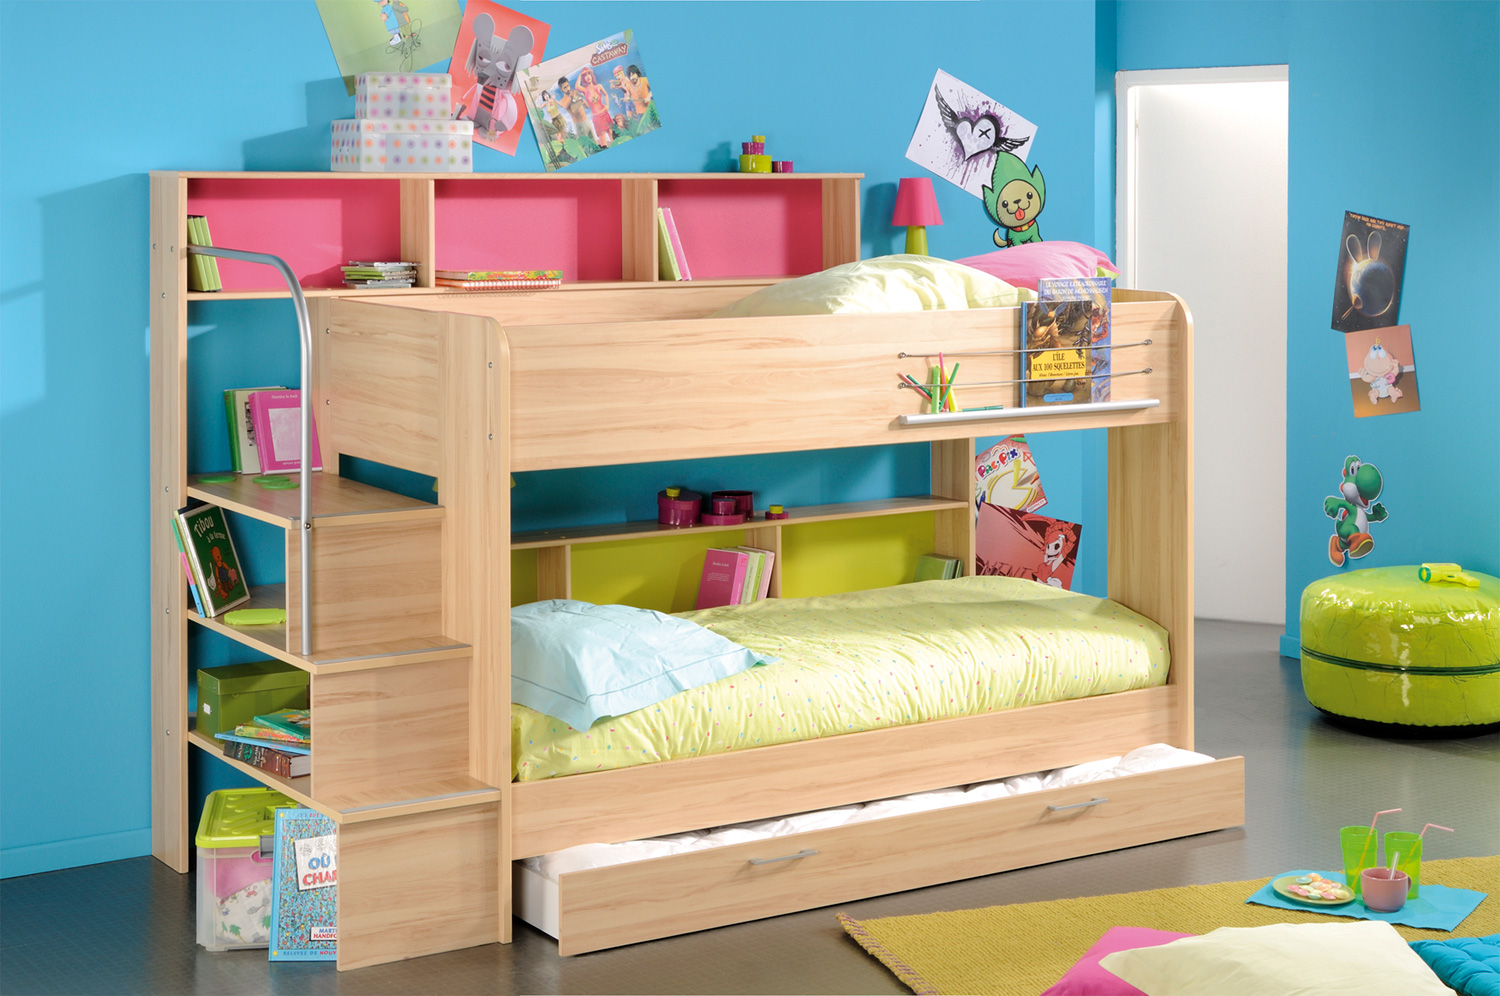 Space saving stylish bunk beds for your home for Cool beds for small bedrooms